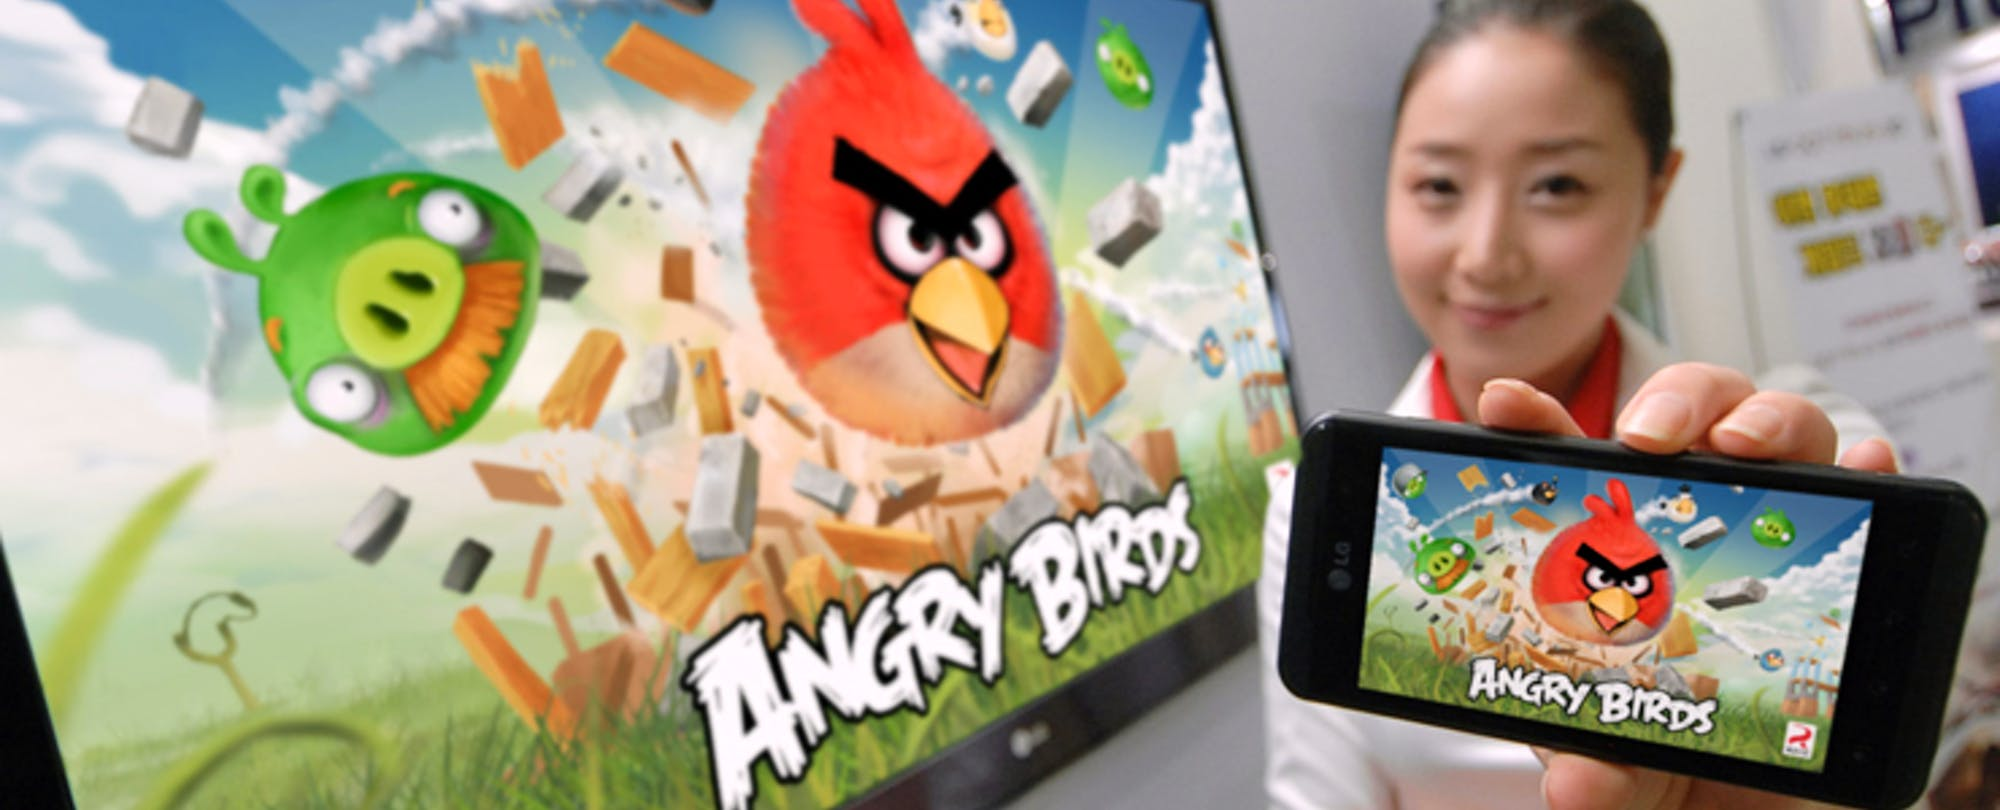 Happy News: Angry Birds are Flocking to Schools